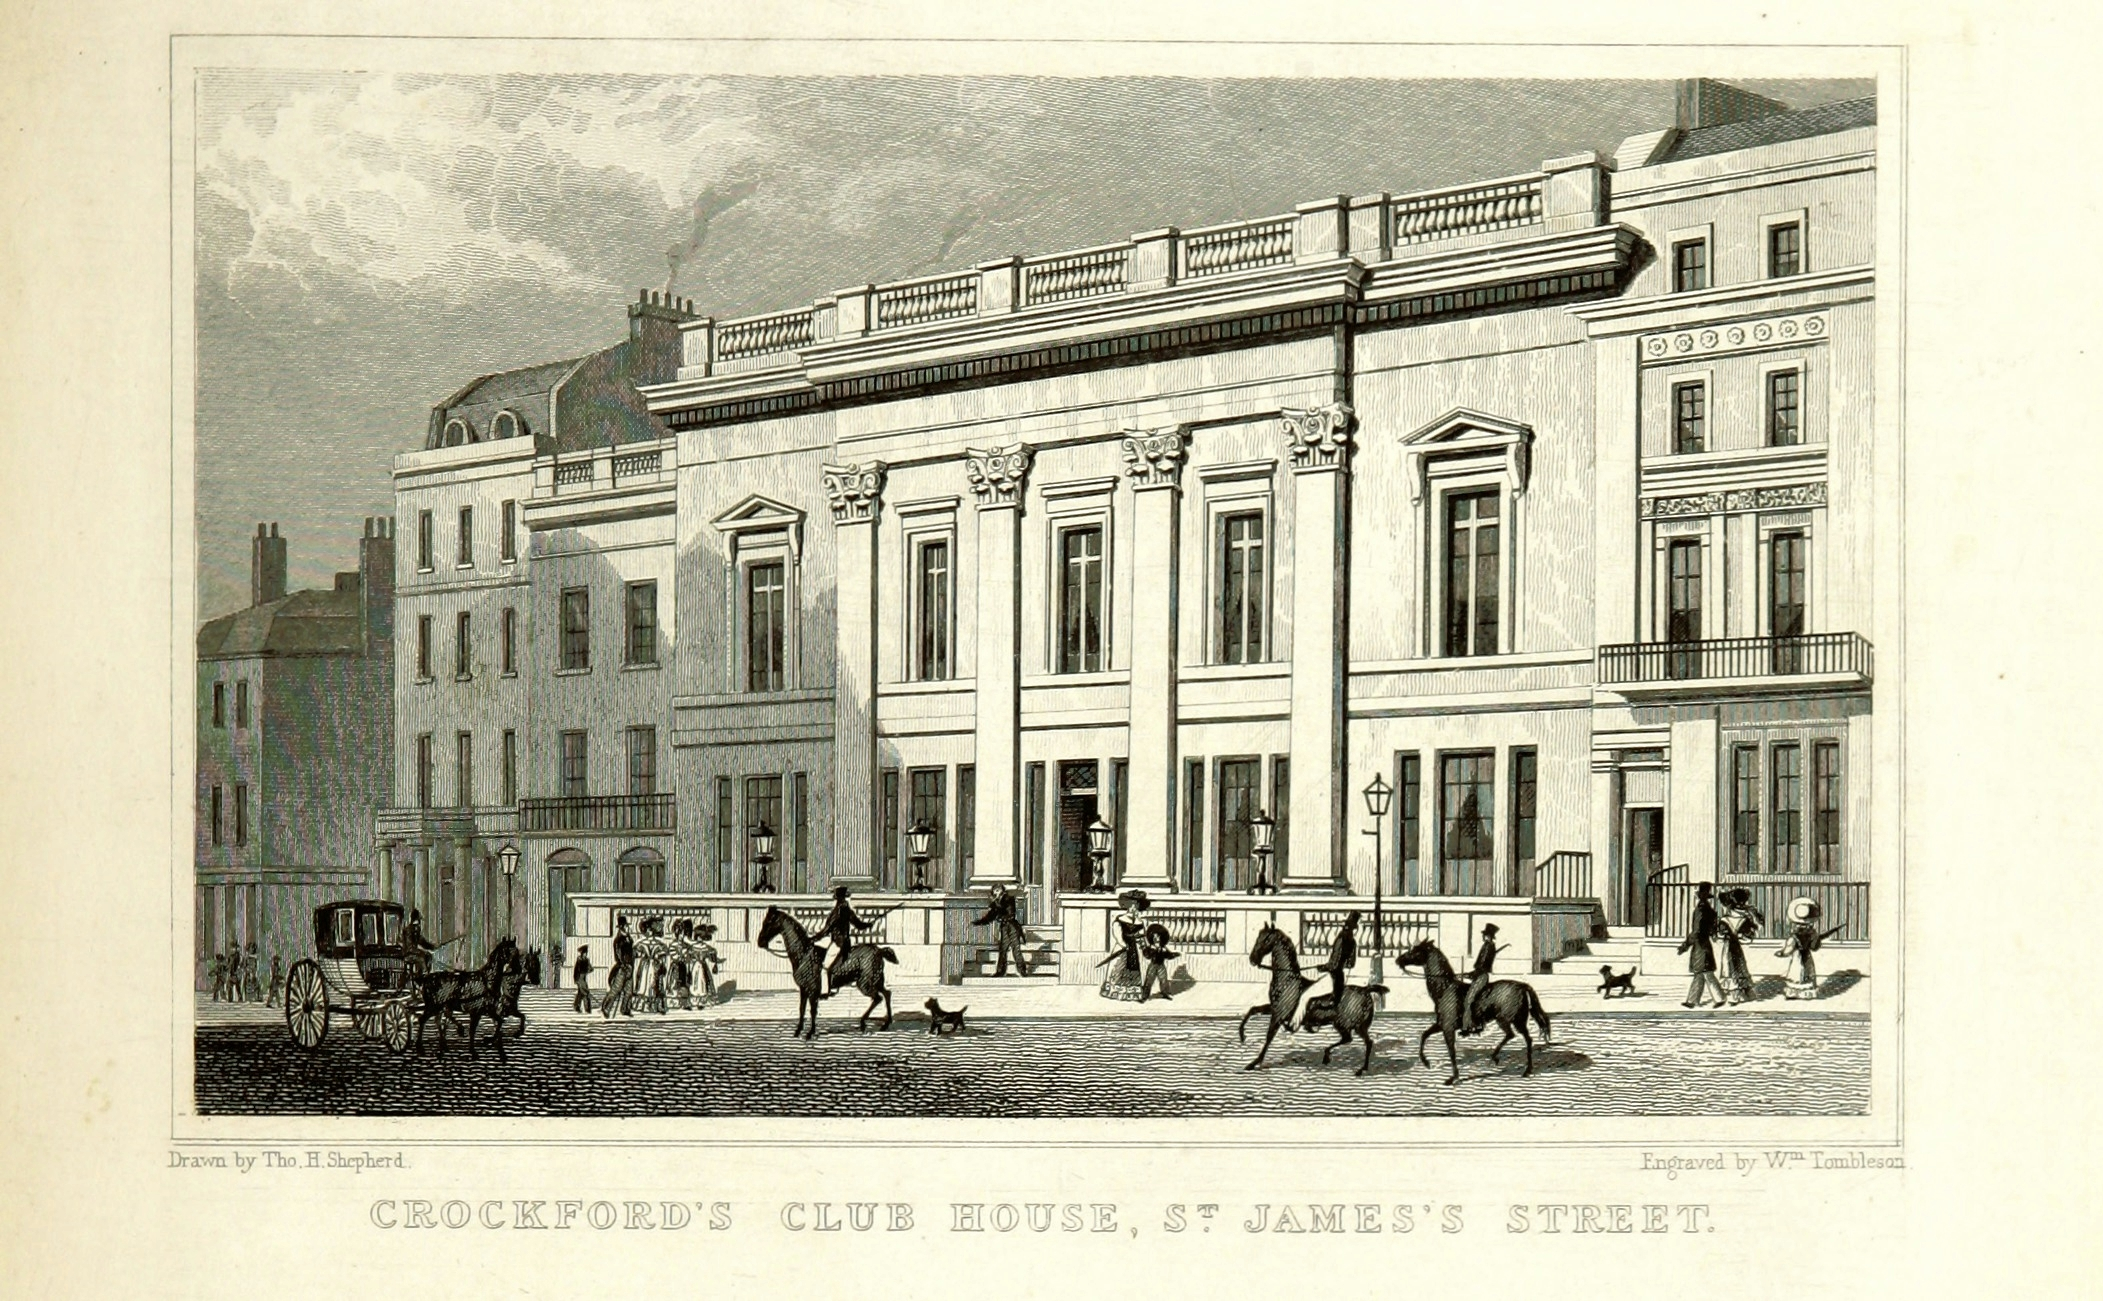 File:Crockford's Club House, St James's Street - Shepherd, Metropolitan Improvements (1828